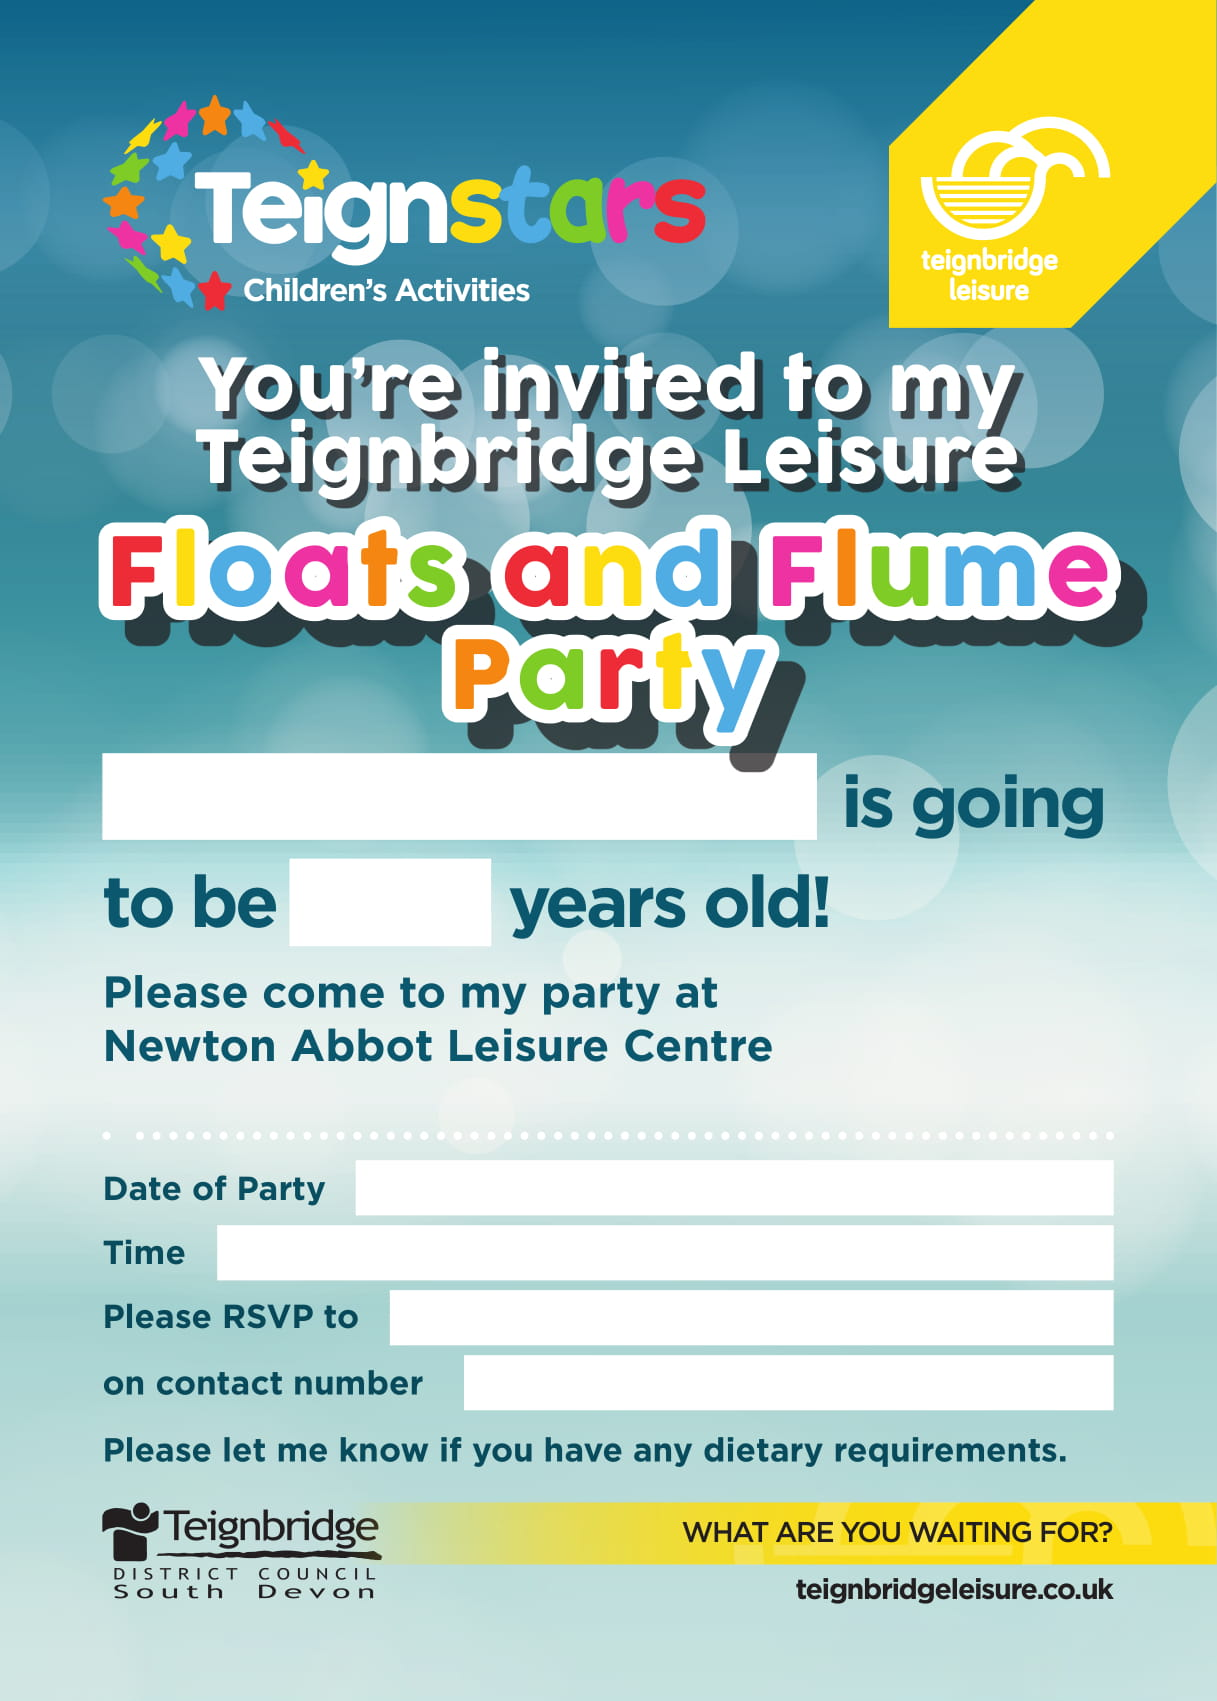 84430_Floats_Flume_Party_Invitations